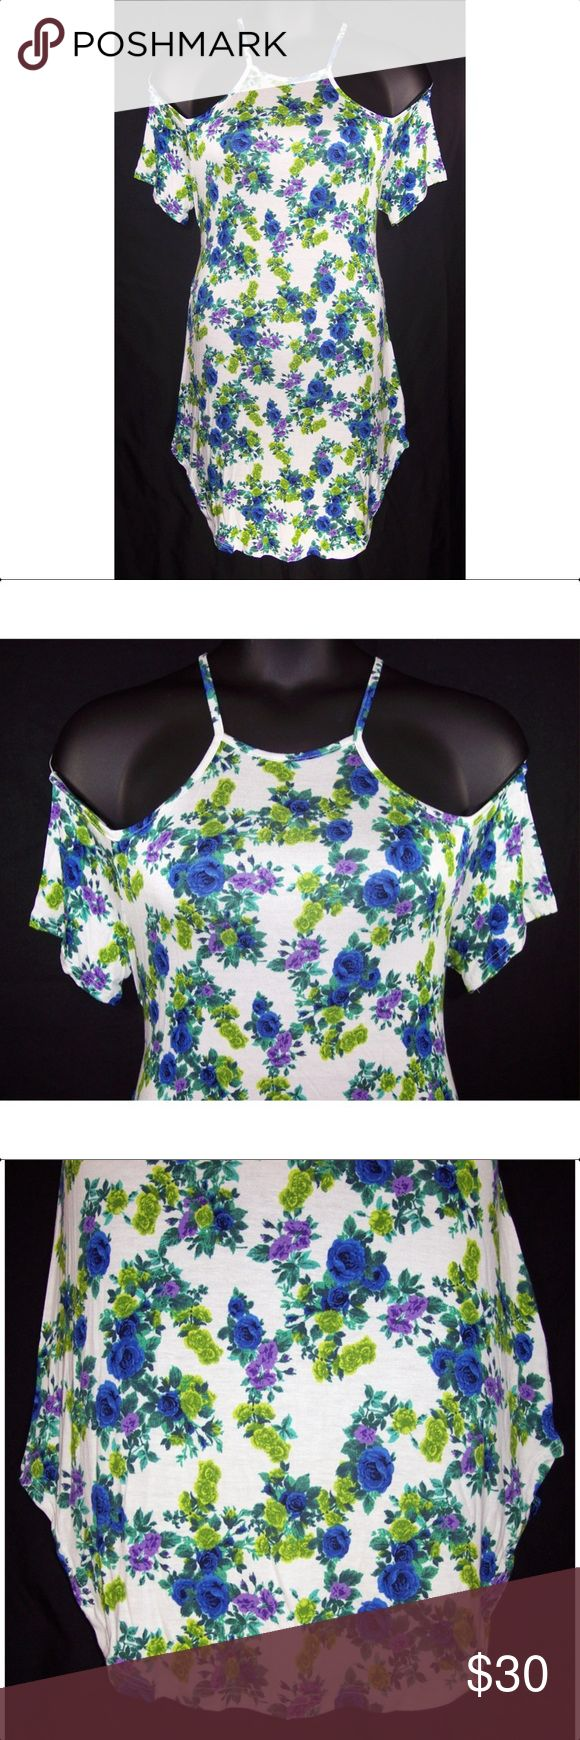 YUMMY PLUS 1X 2X 3X White Floral Tank Top-NEW Its white with a blue, purple, and green Floral design throughout. Is cold shoulder style with spaghetti straps, curved hem, soft lightweight knit fabric is 95% rayon, 5% spandex, hand washable. Measurements: 1X bust-38 to 48 (stretched), length- 33 1/2. 2X bust-42 to 52 (stretched), length-34. 3X bust-44 to 54 (stretched), length-34 NWOT Yummy Plus Tops Tank Tops